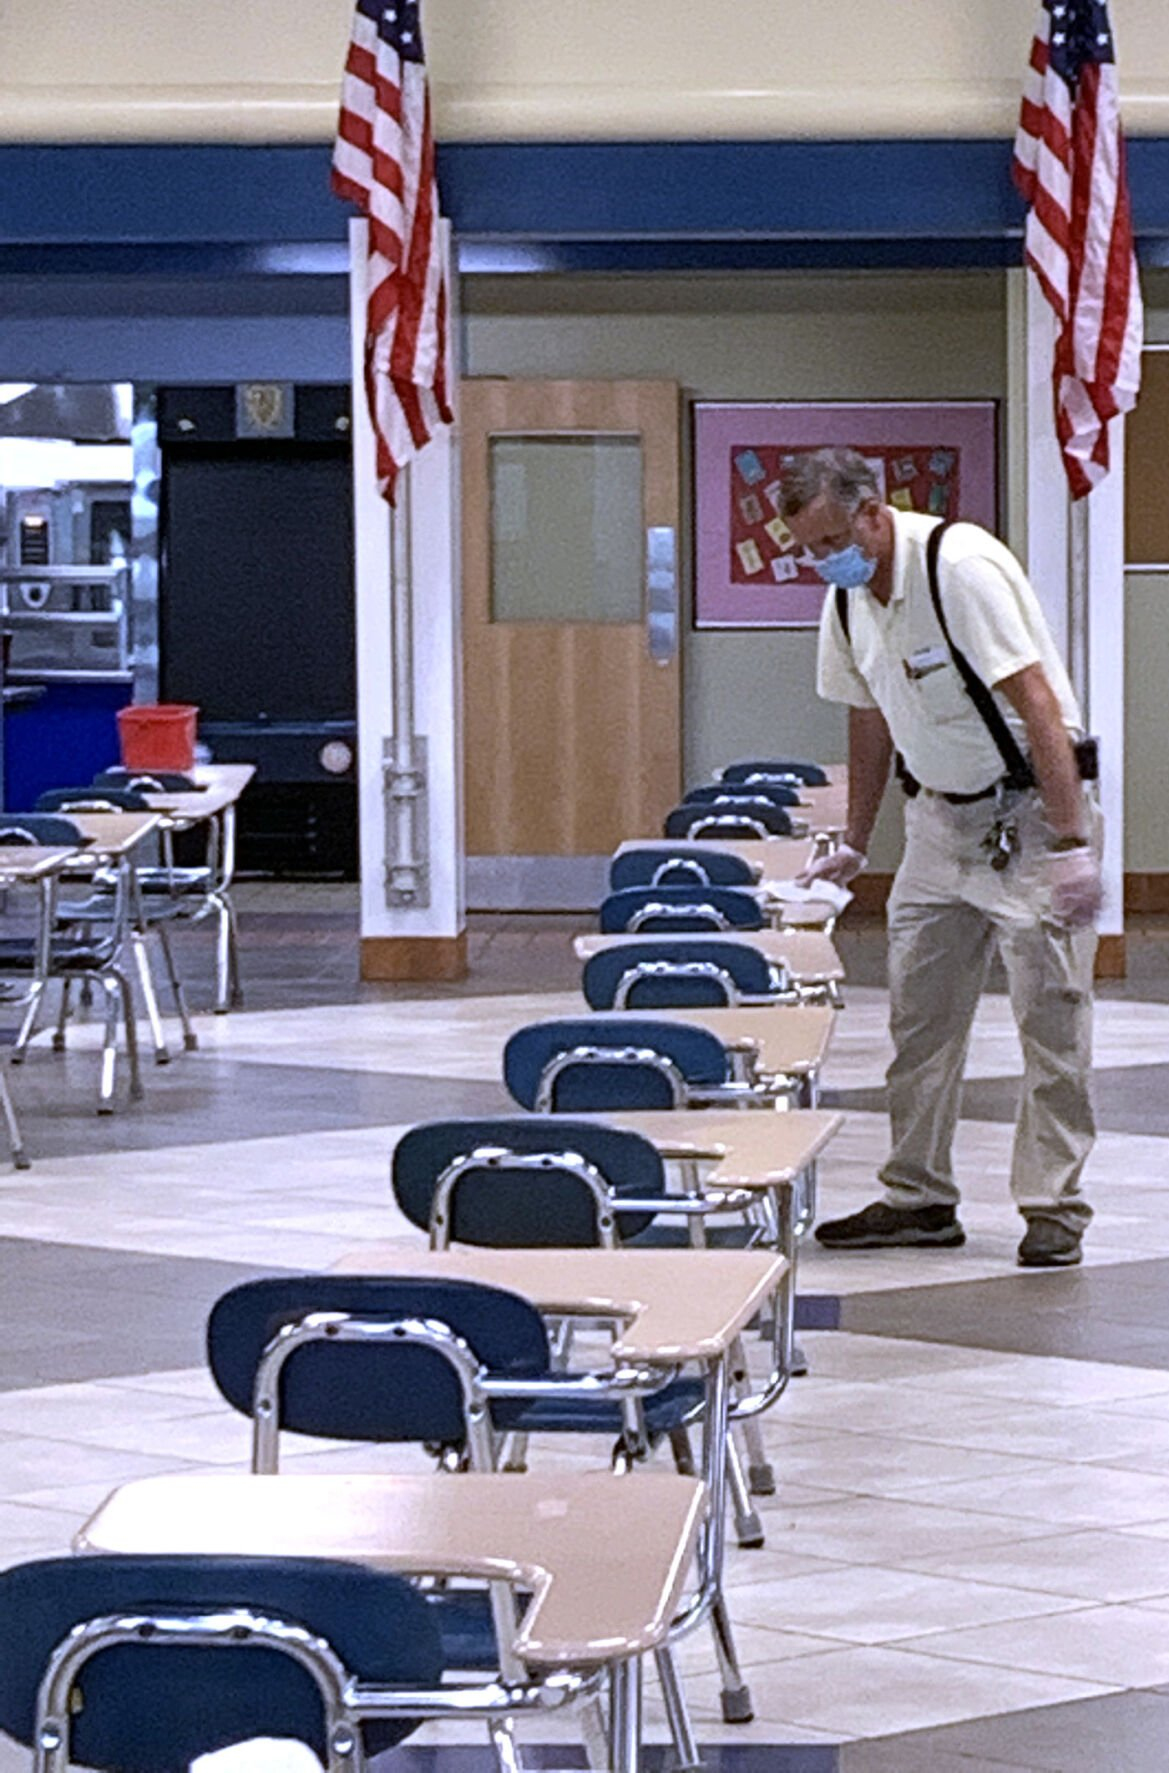 Keeping schools clean remains a continuous effort